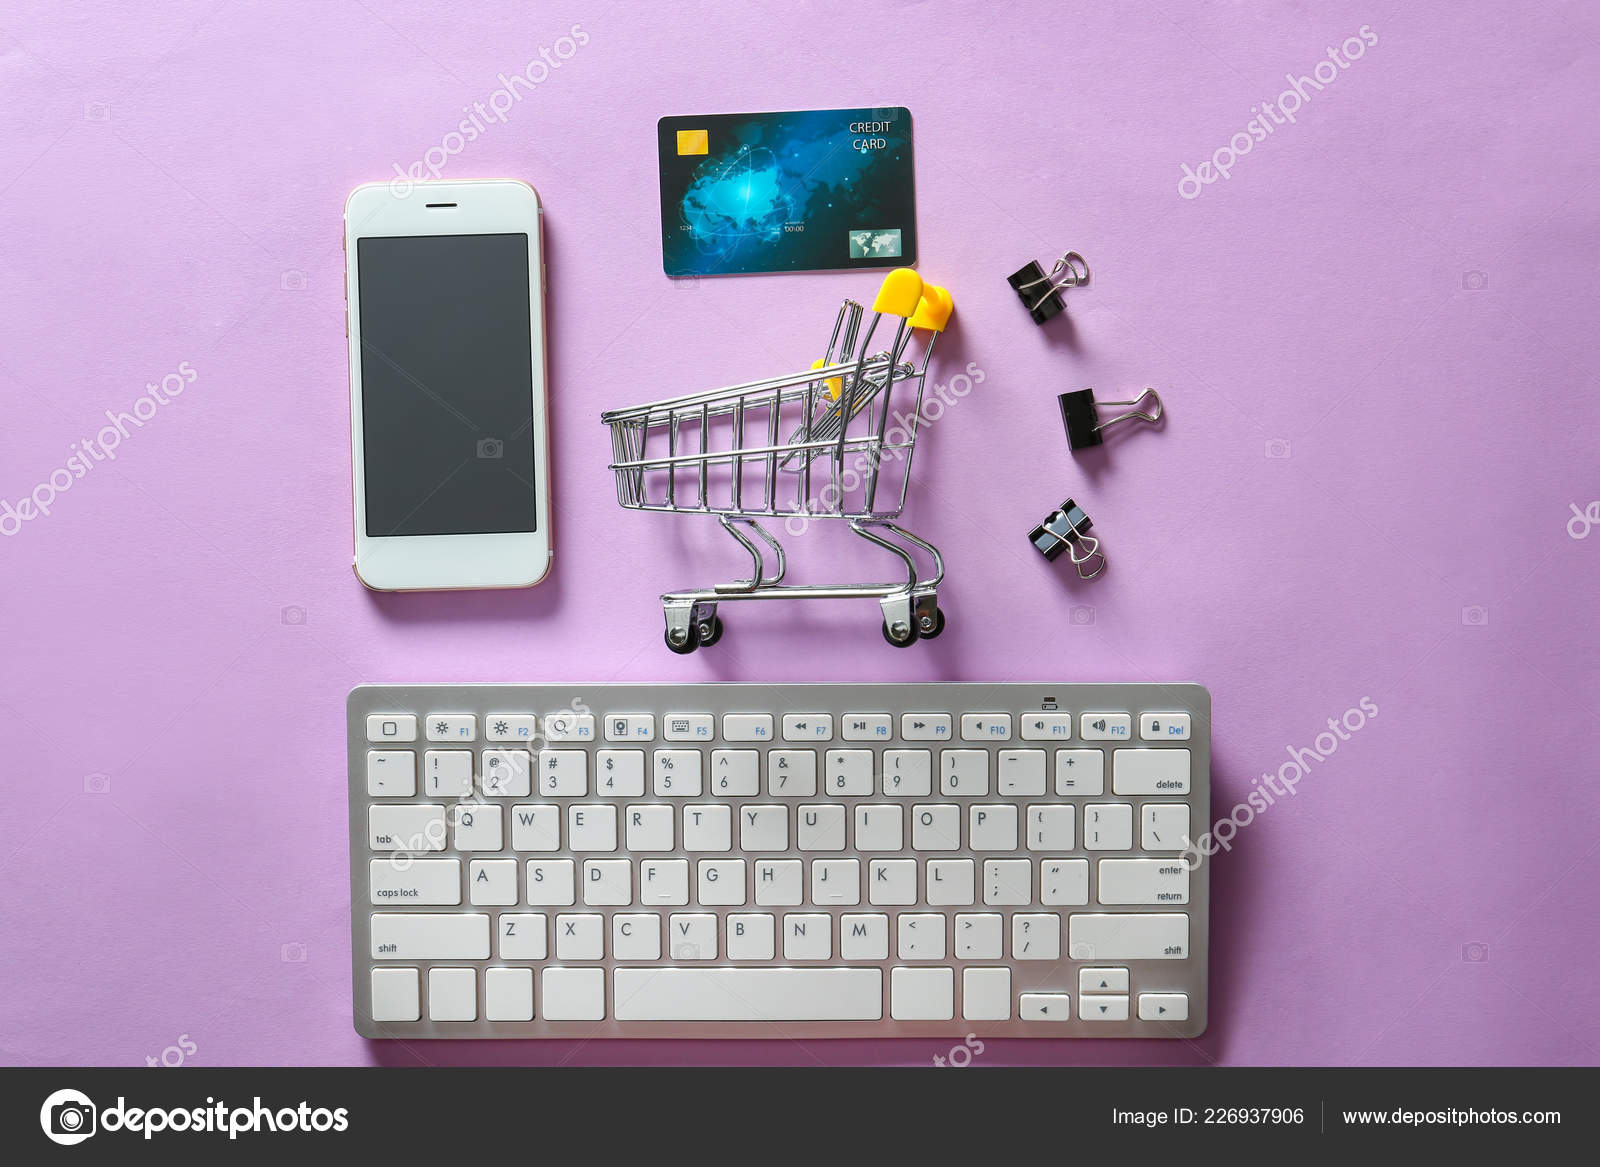 7b41b670ed0 Composition Small Cart Mobile Phone Computer Keyboard Color ...